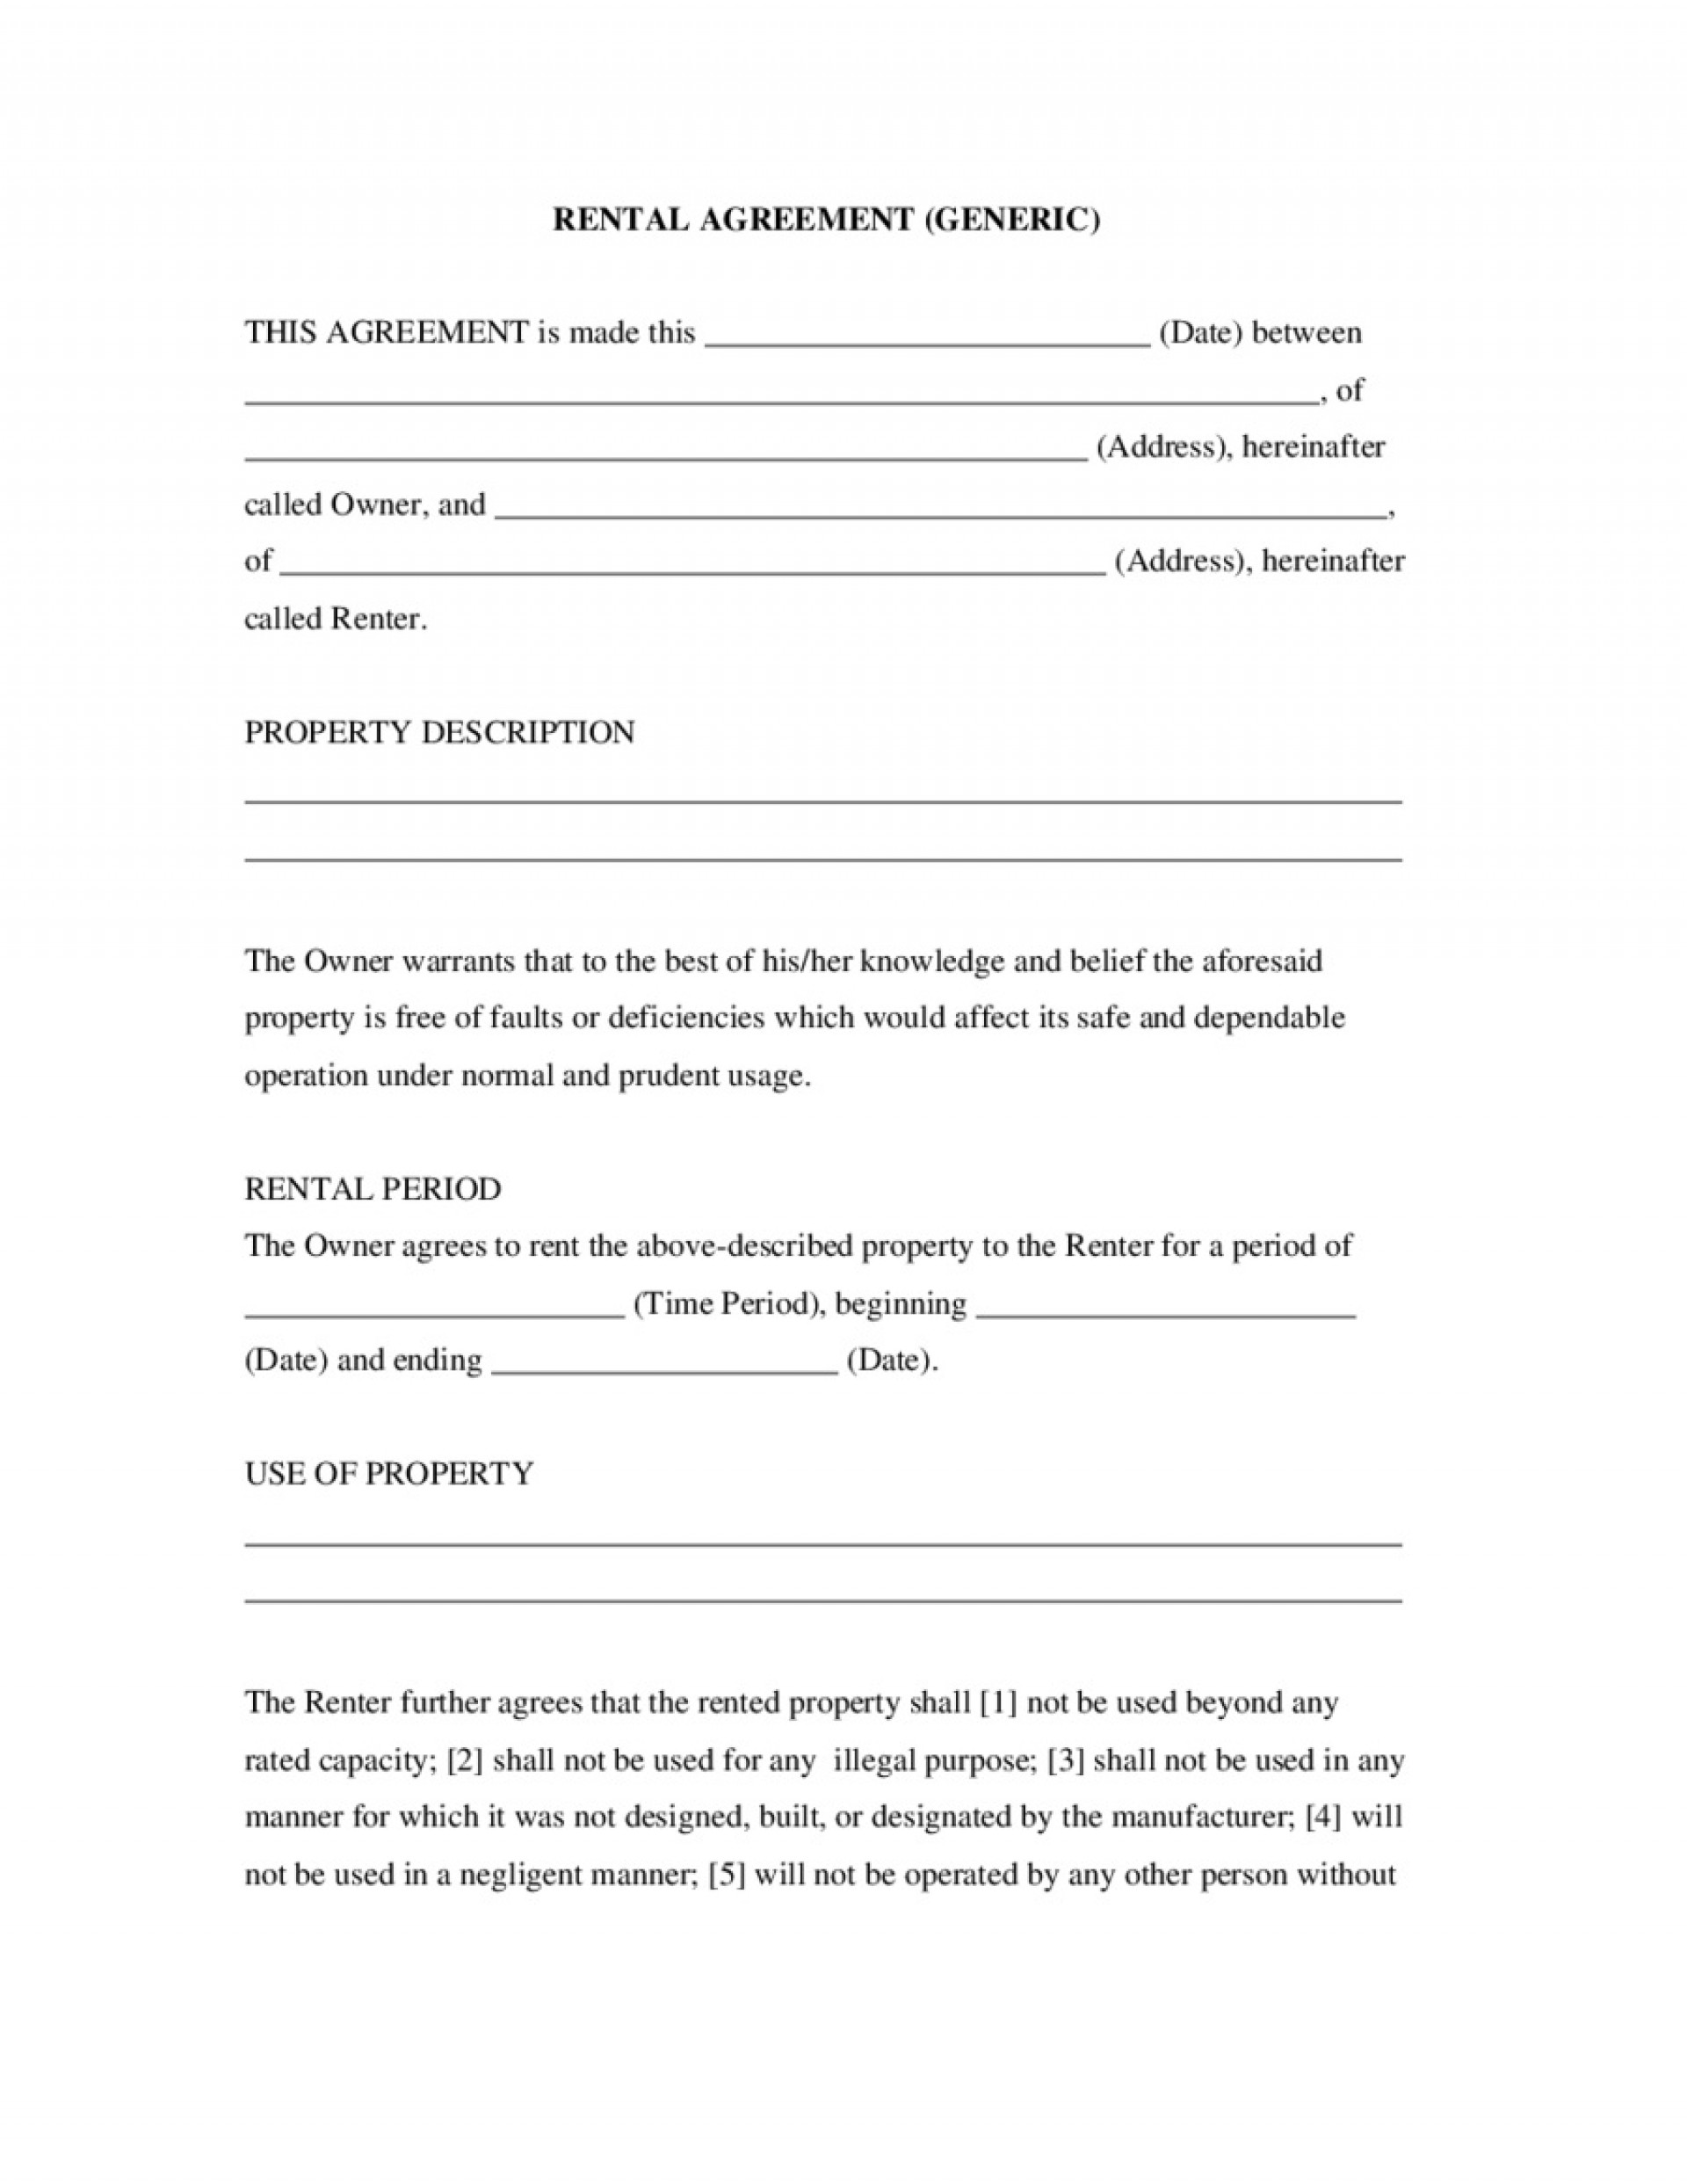 007 Awesome Basic Rental Agreement Template Sample  Simple Word Tenancy Free1920